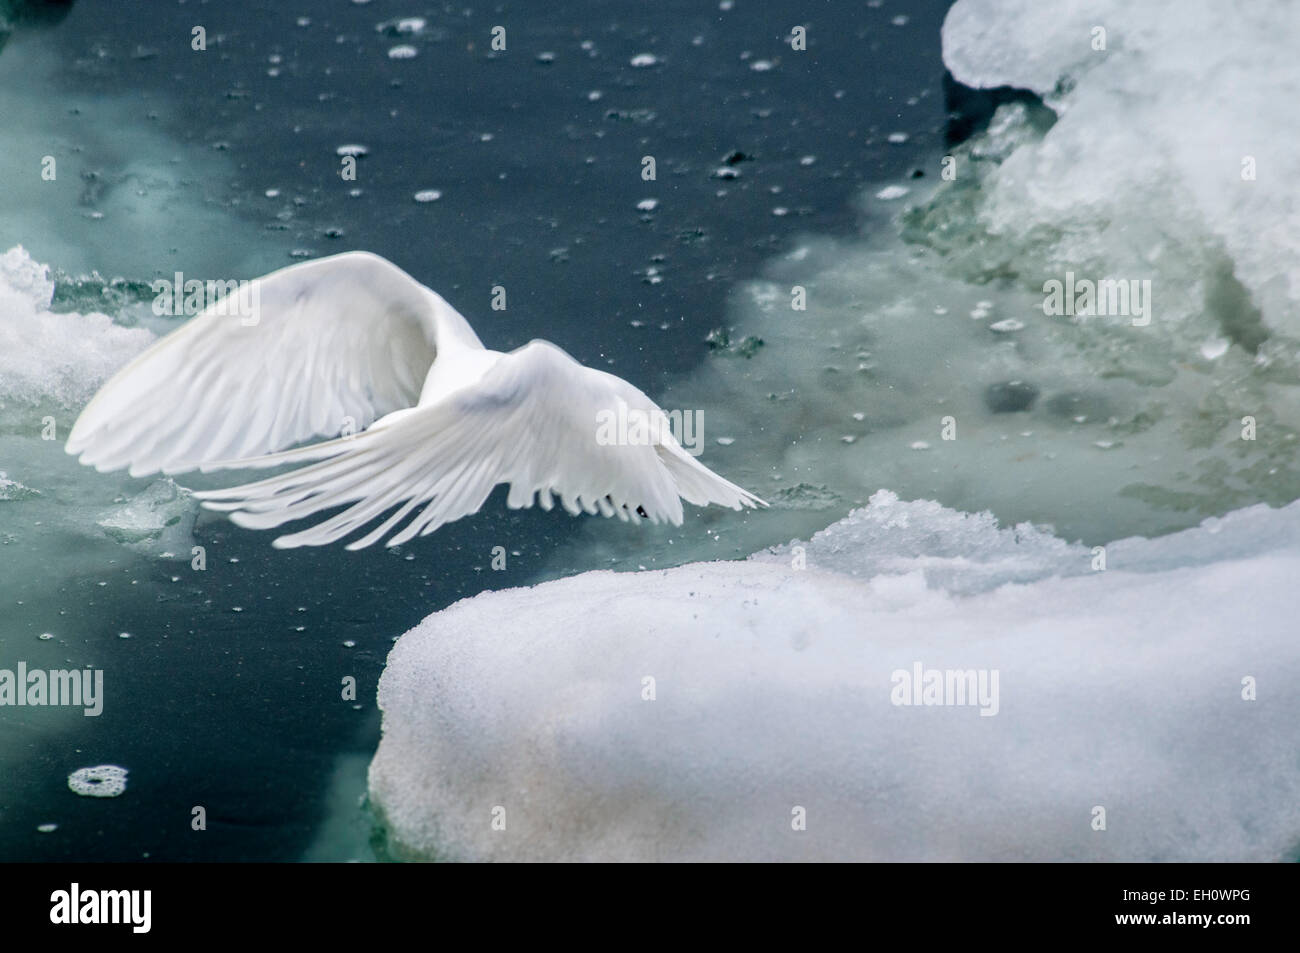 dreamy-image-of-an-adult-ivory-gull-page